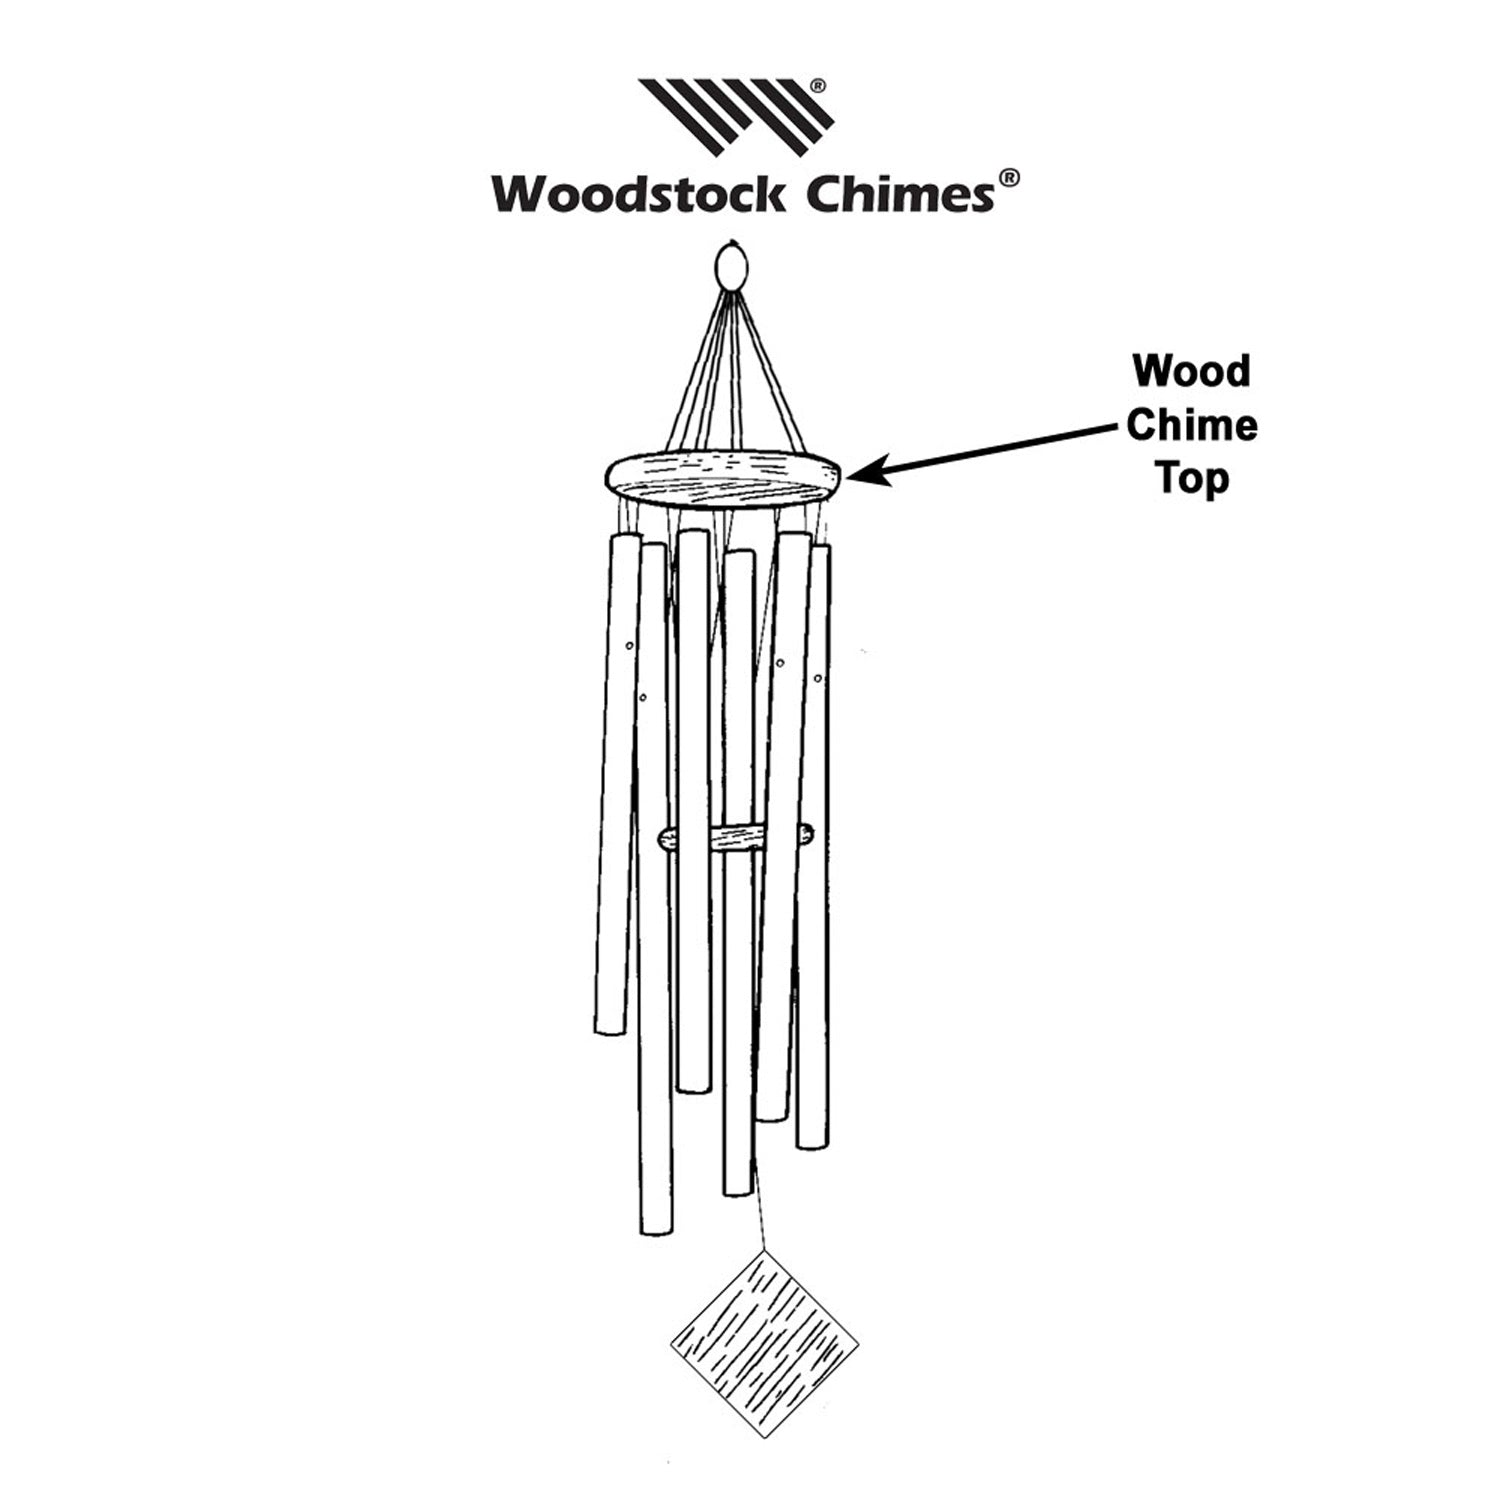 5.25-inch Wood Chime Top for Encore Chimes alternate image